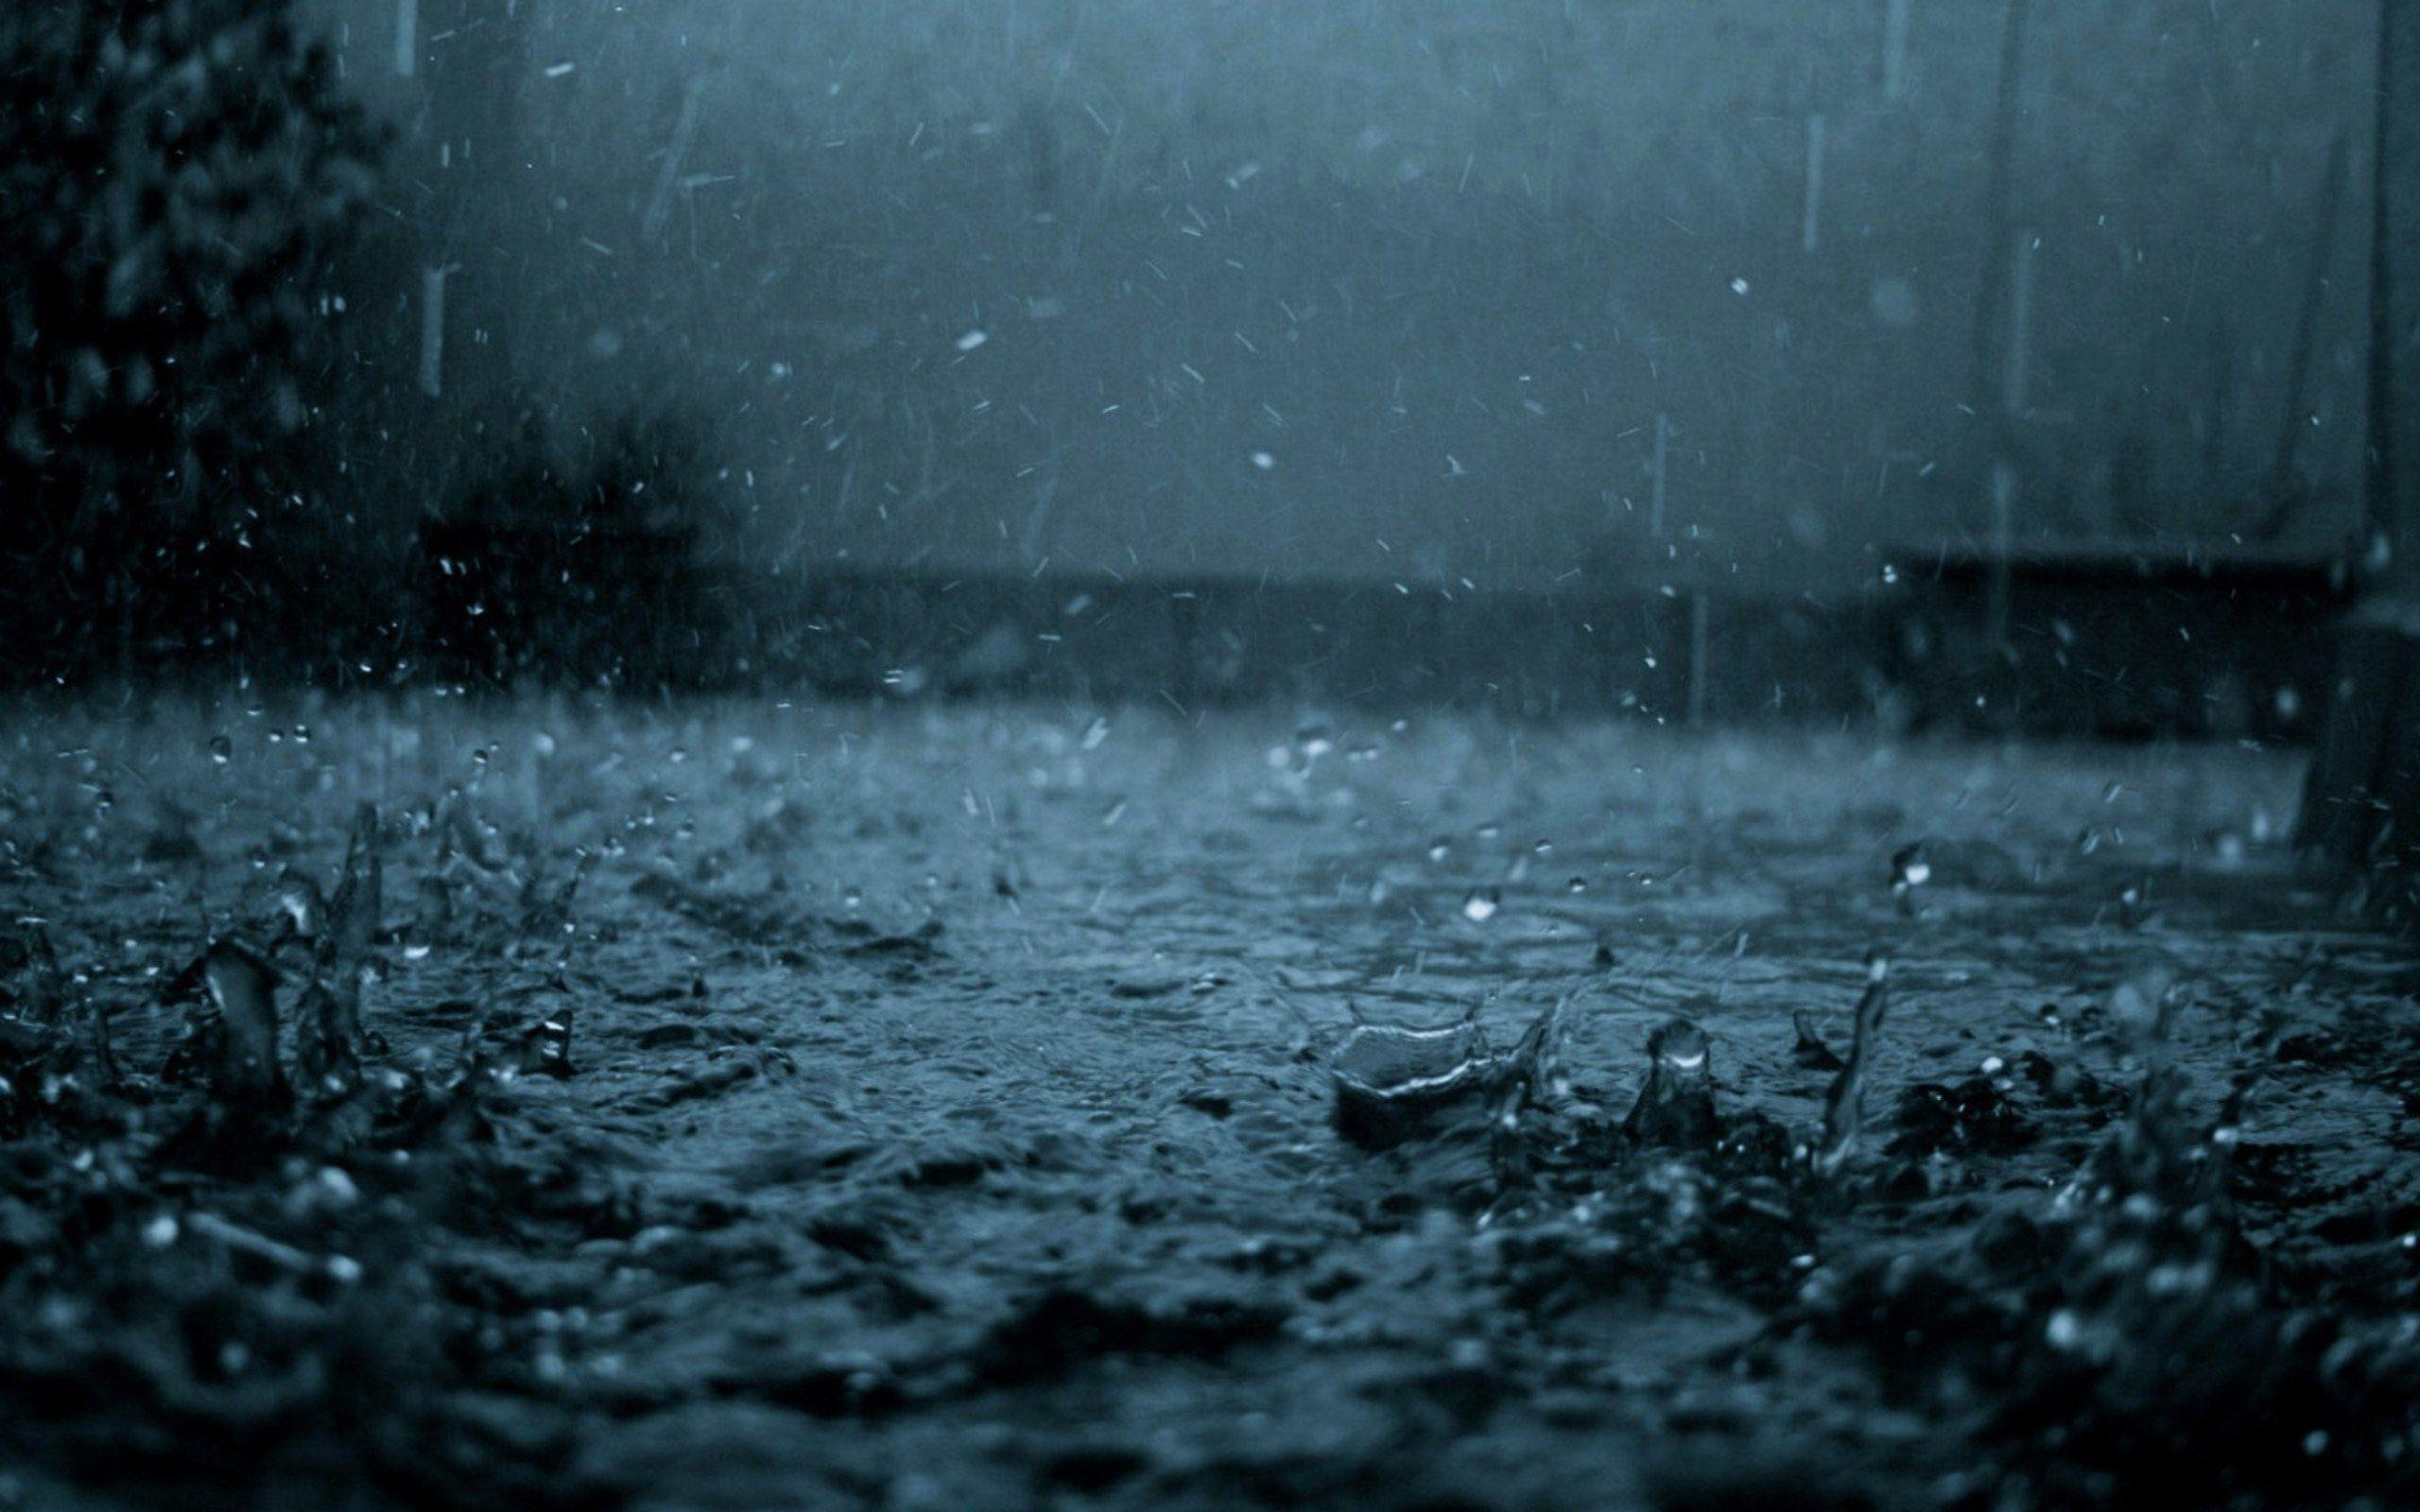 Rainy Wallpapers Hd Wallpaper Collections 4kwallpaperwiki